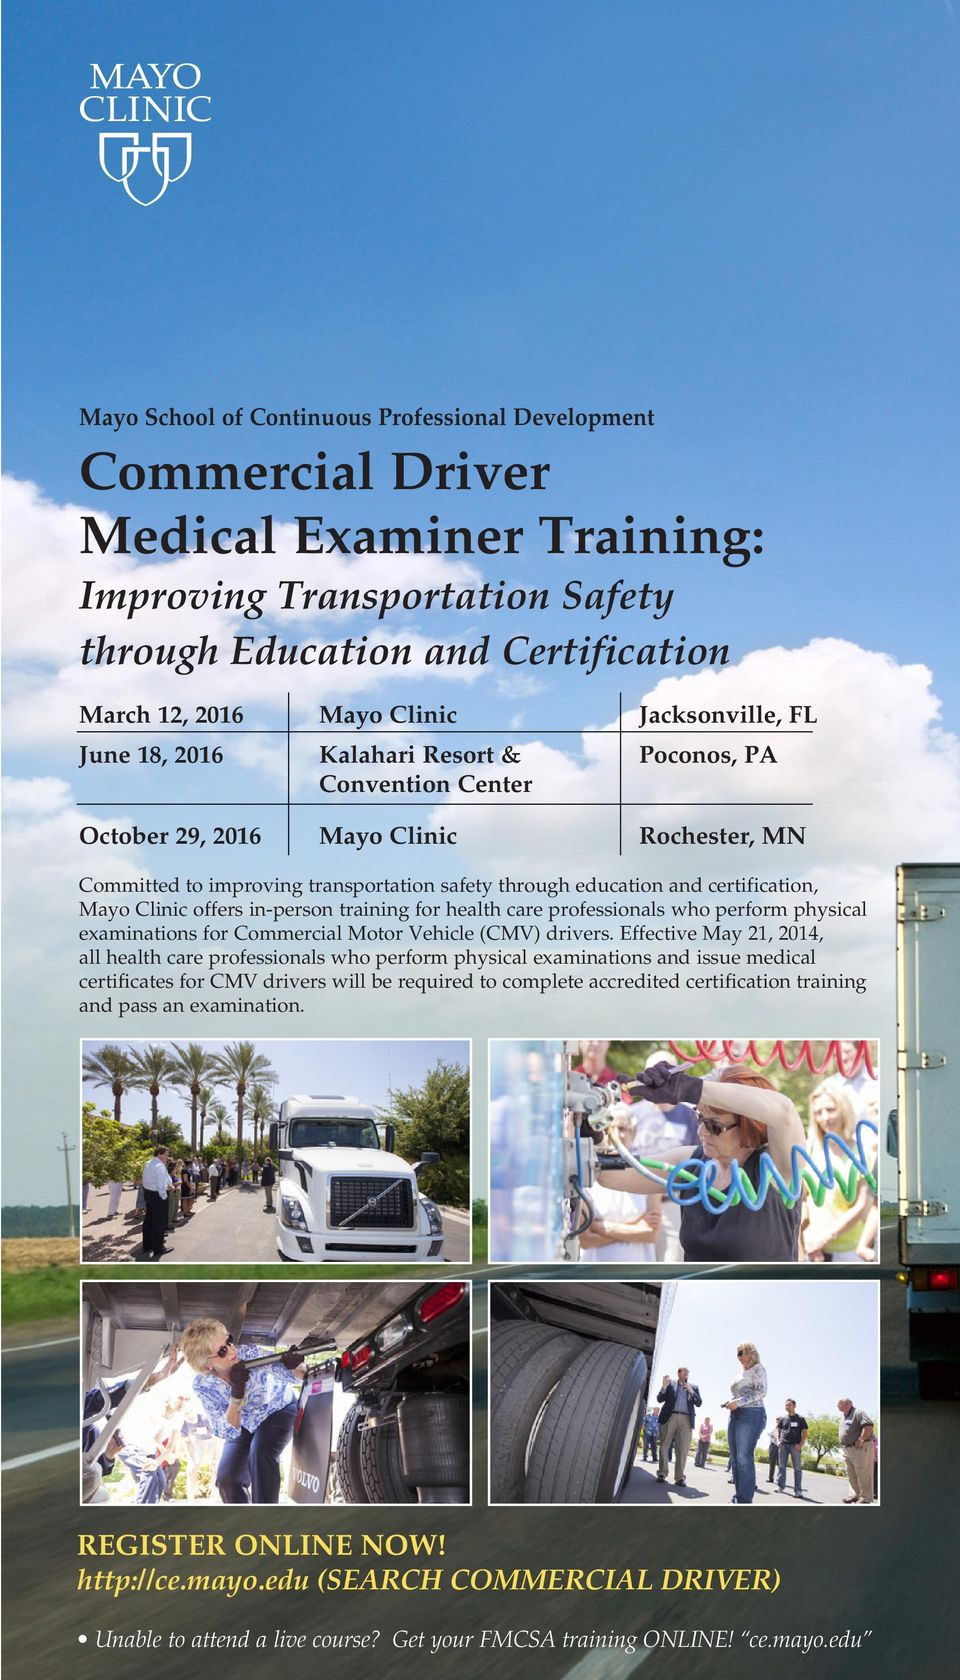 certification, Mayo Clinic offers in-person training for health care professionals who perform physical examinations for Commercial Motor Vehicle (CMV) drivers.